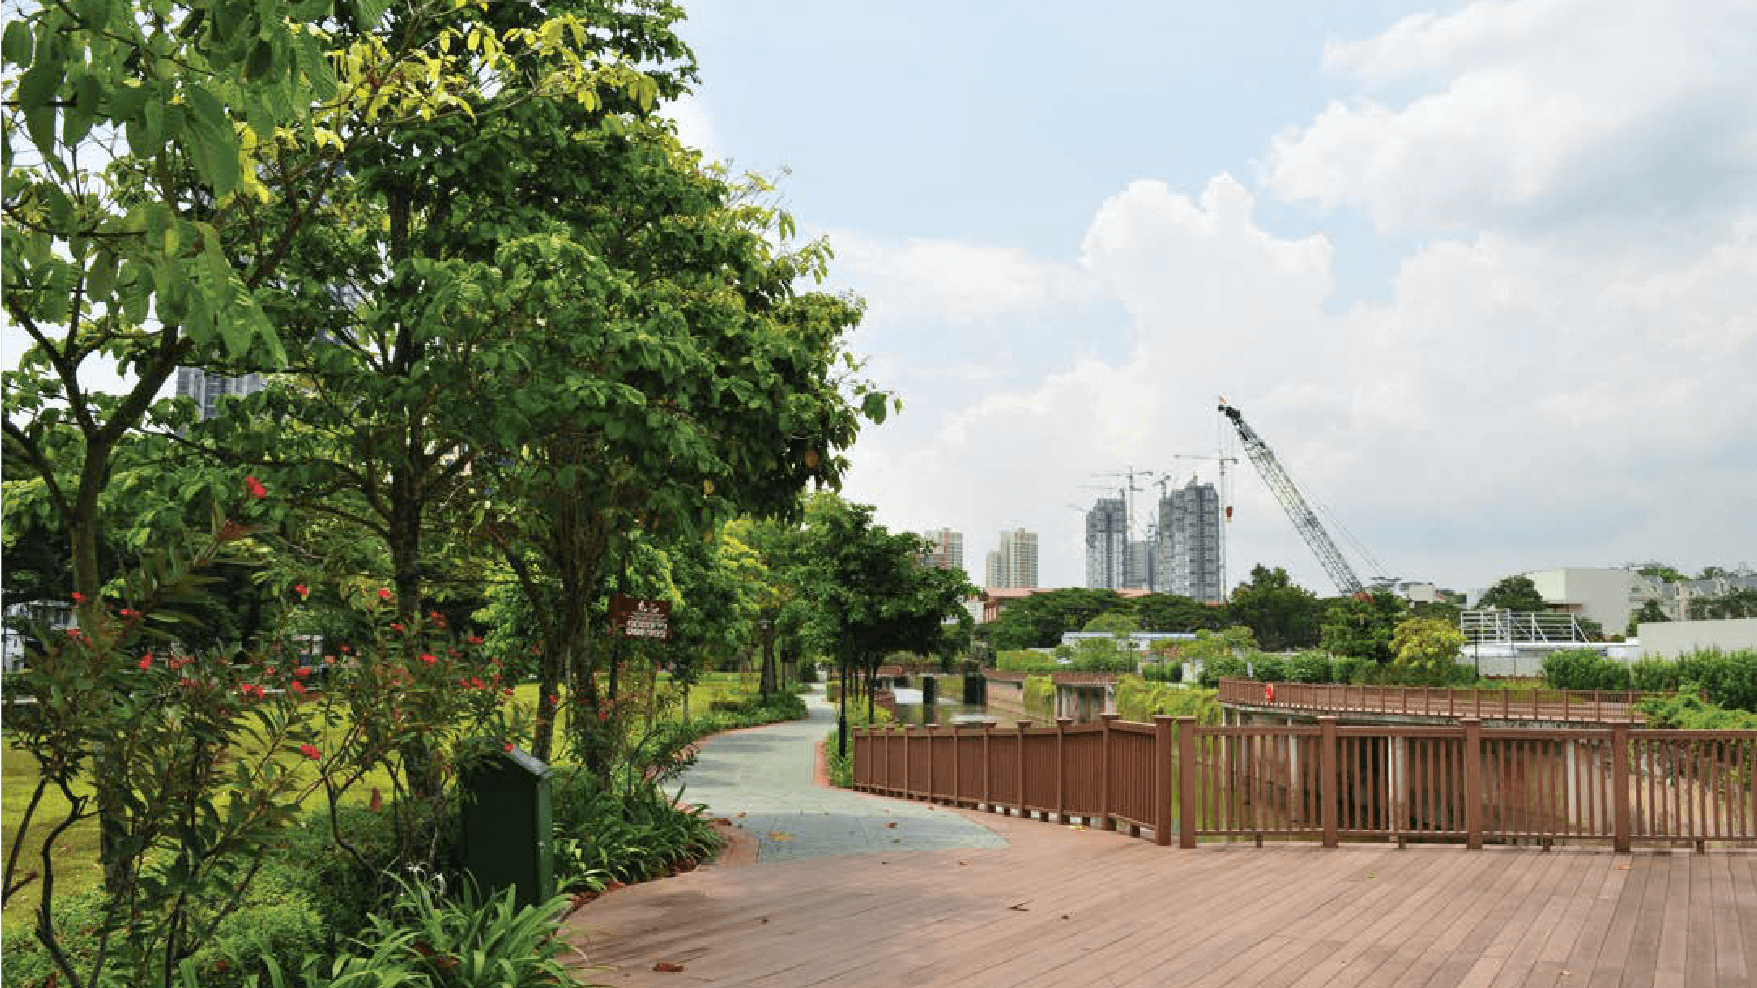 The park connector near The Crest can take you to Singapore's most beautiful spots.